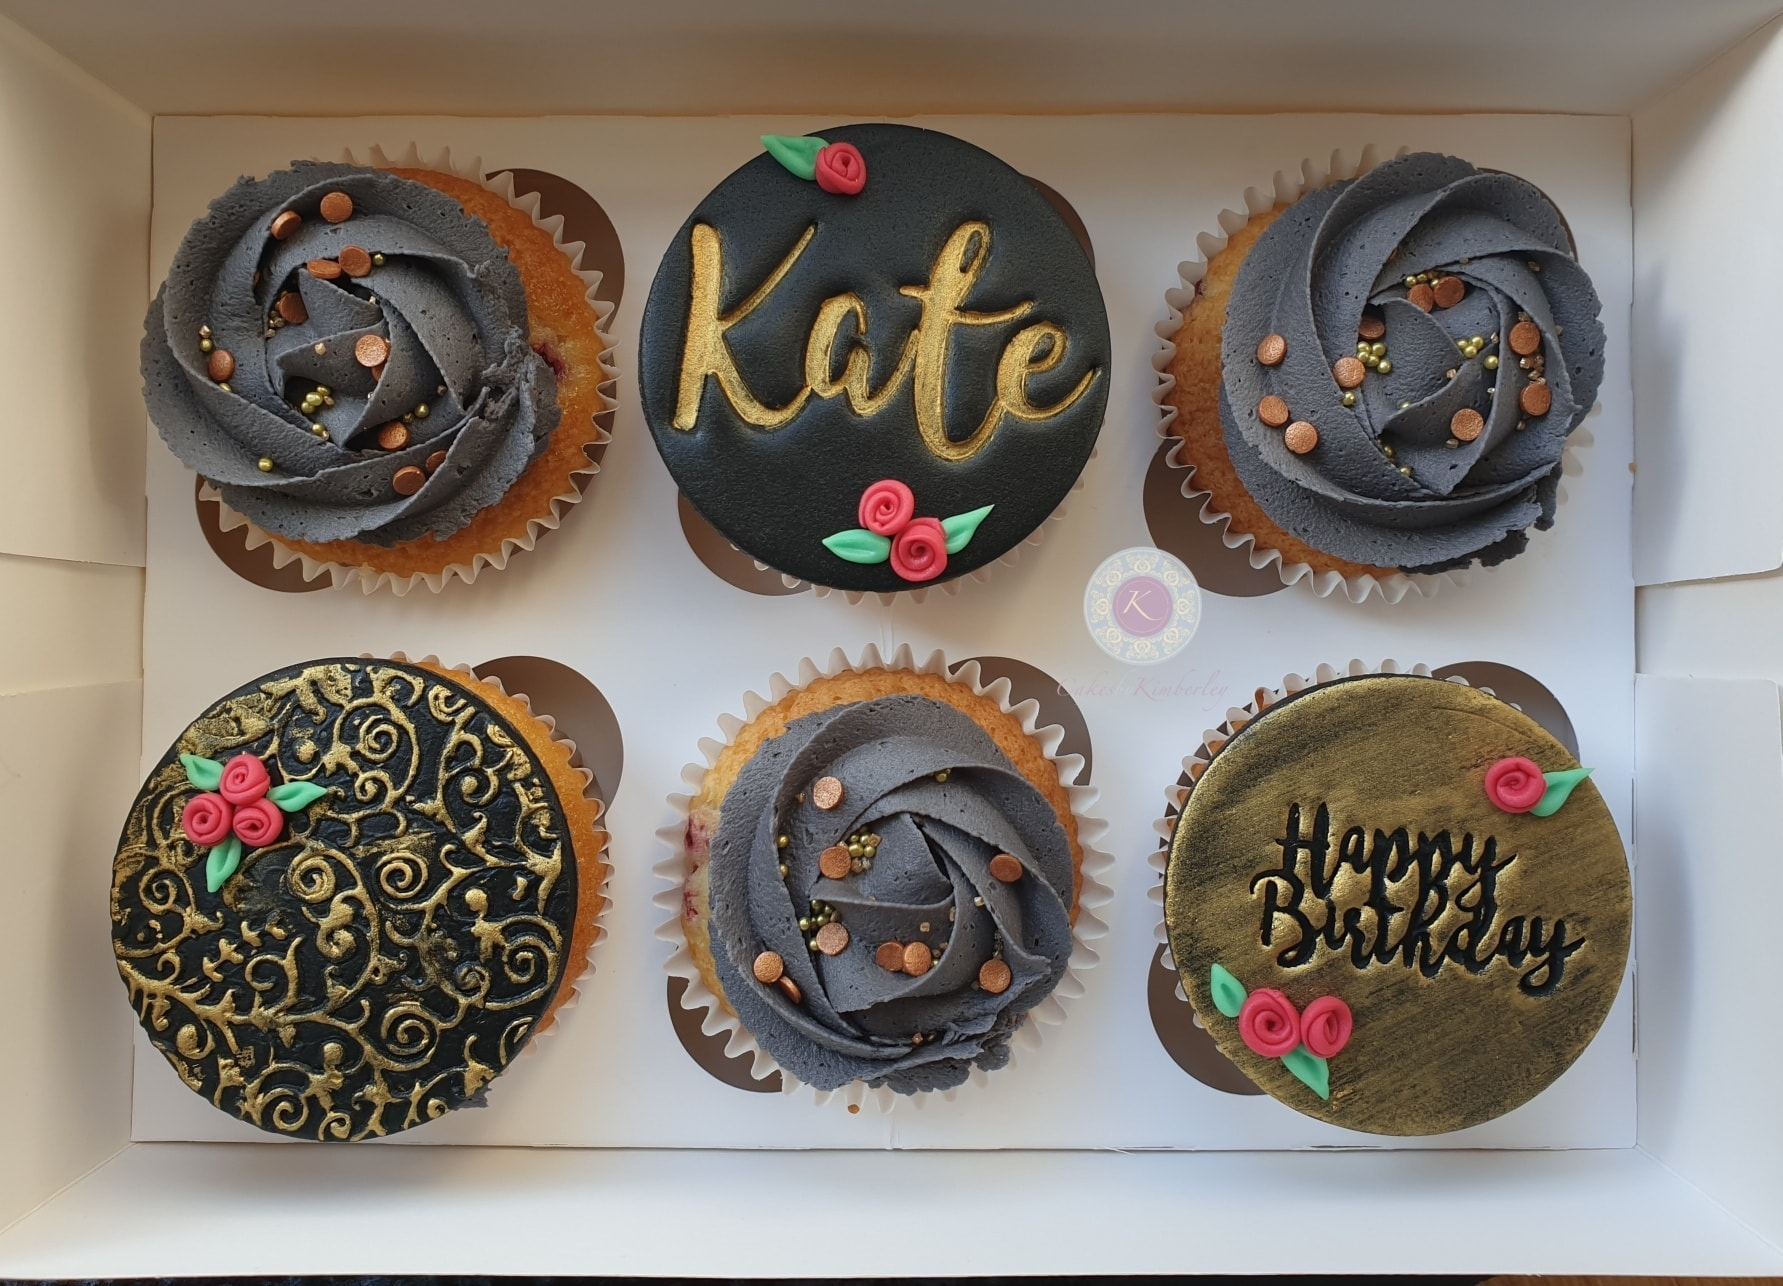 Cupcakes - Kate Gothic